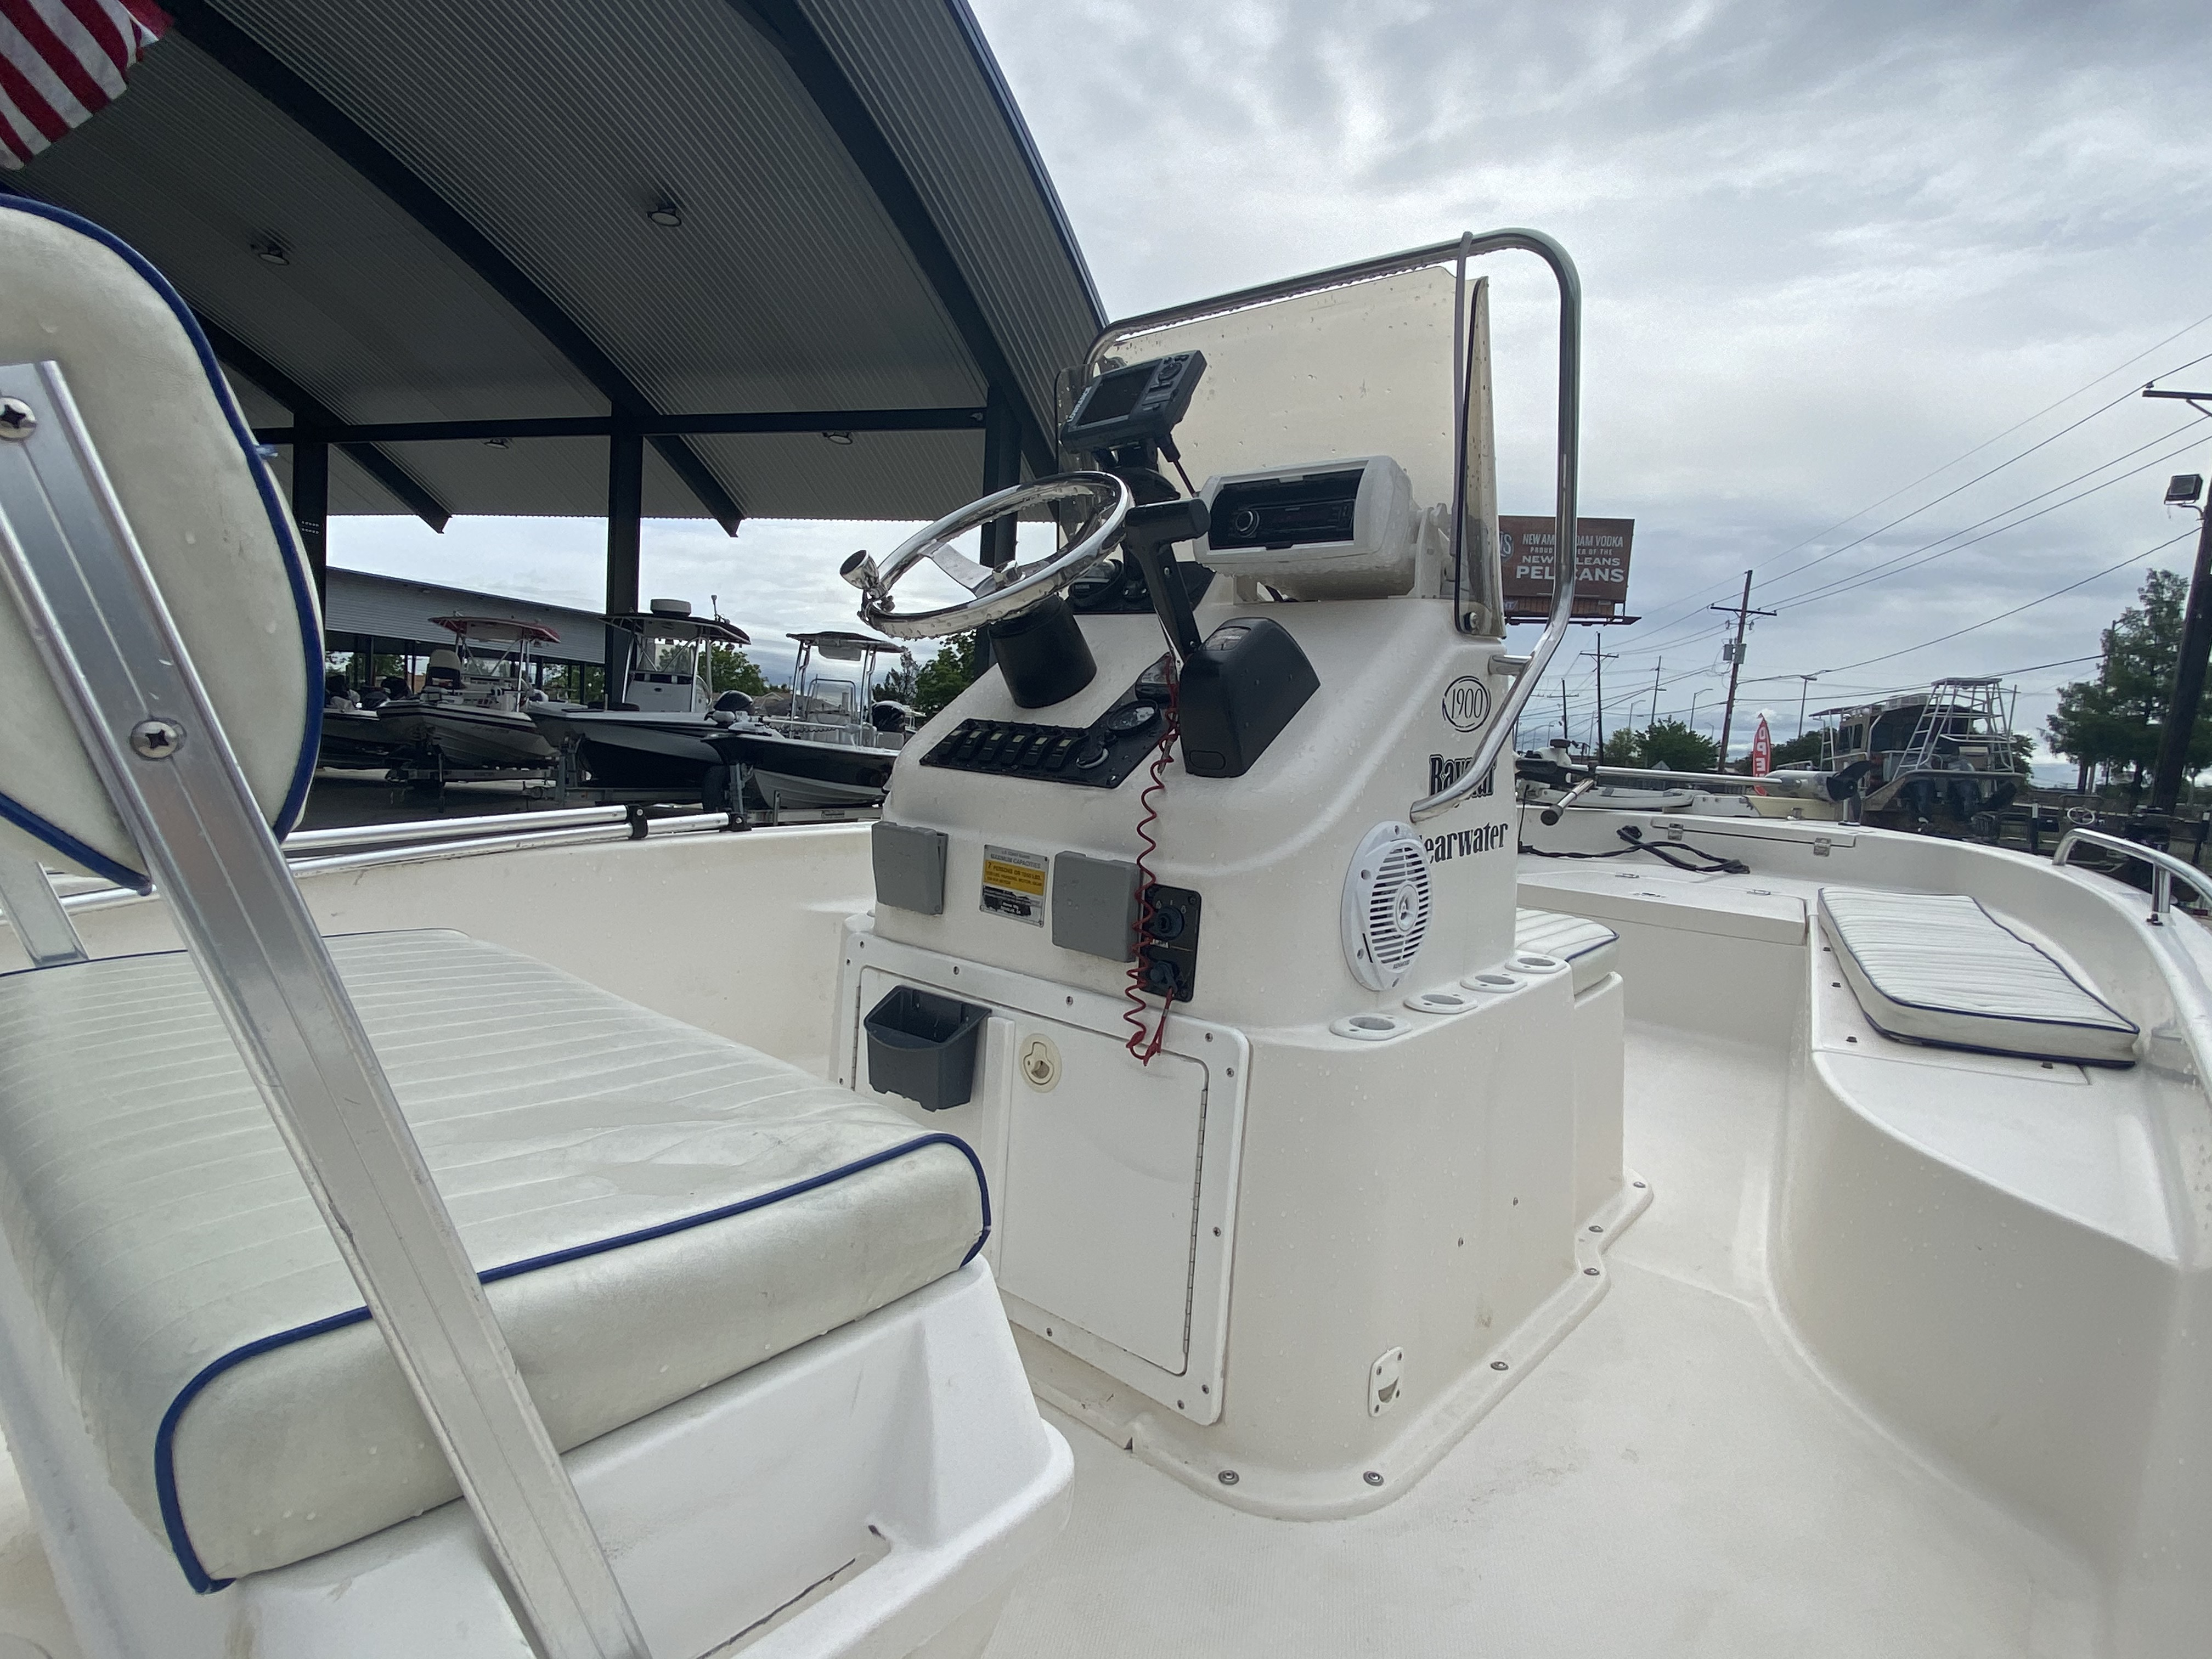 2007 Clearwater boat for sale, model of the boat is 1900 & Image # 12 of 13